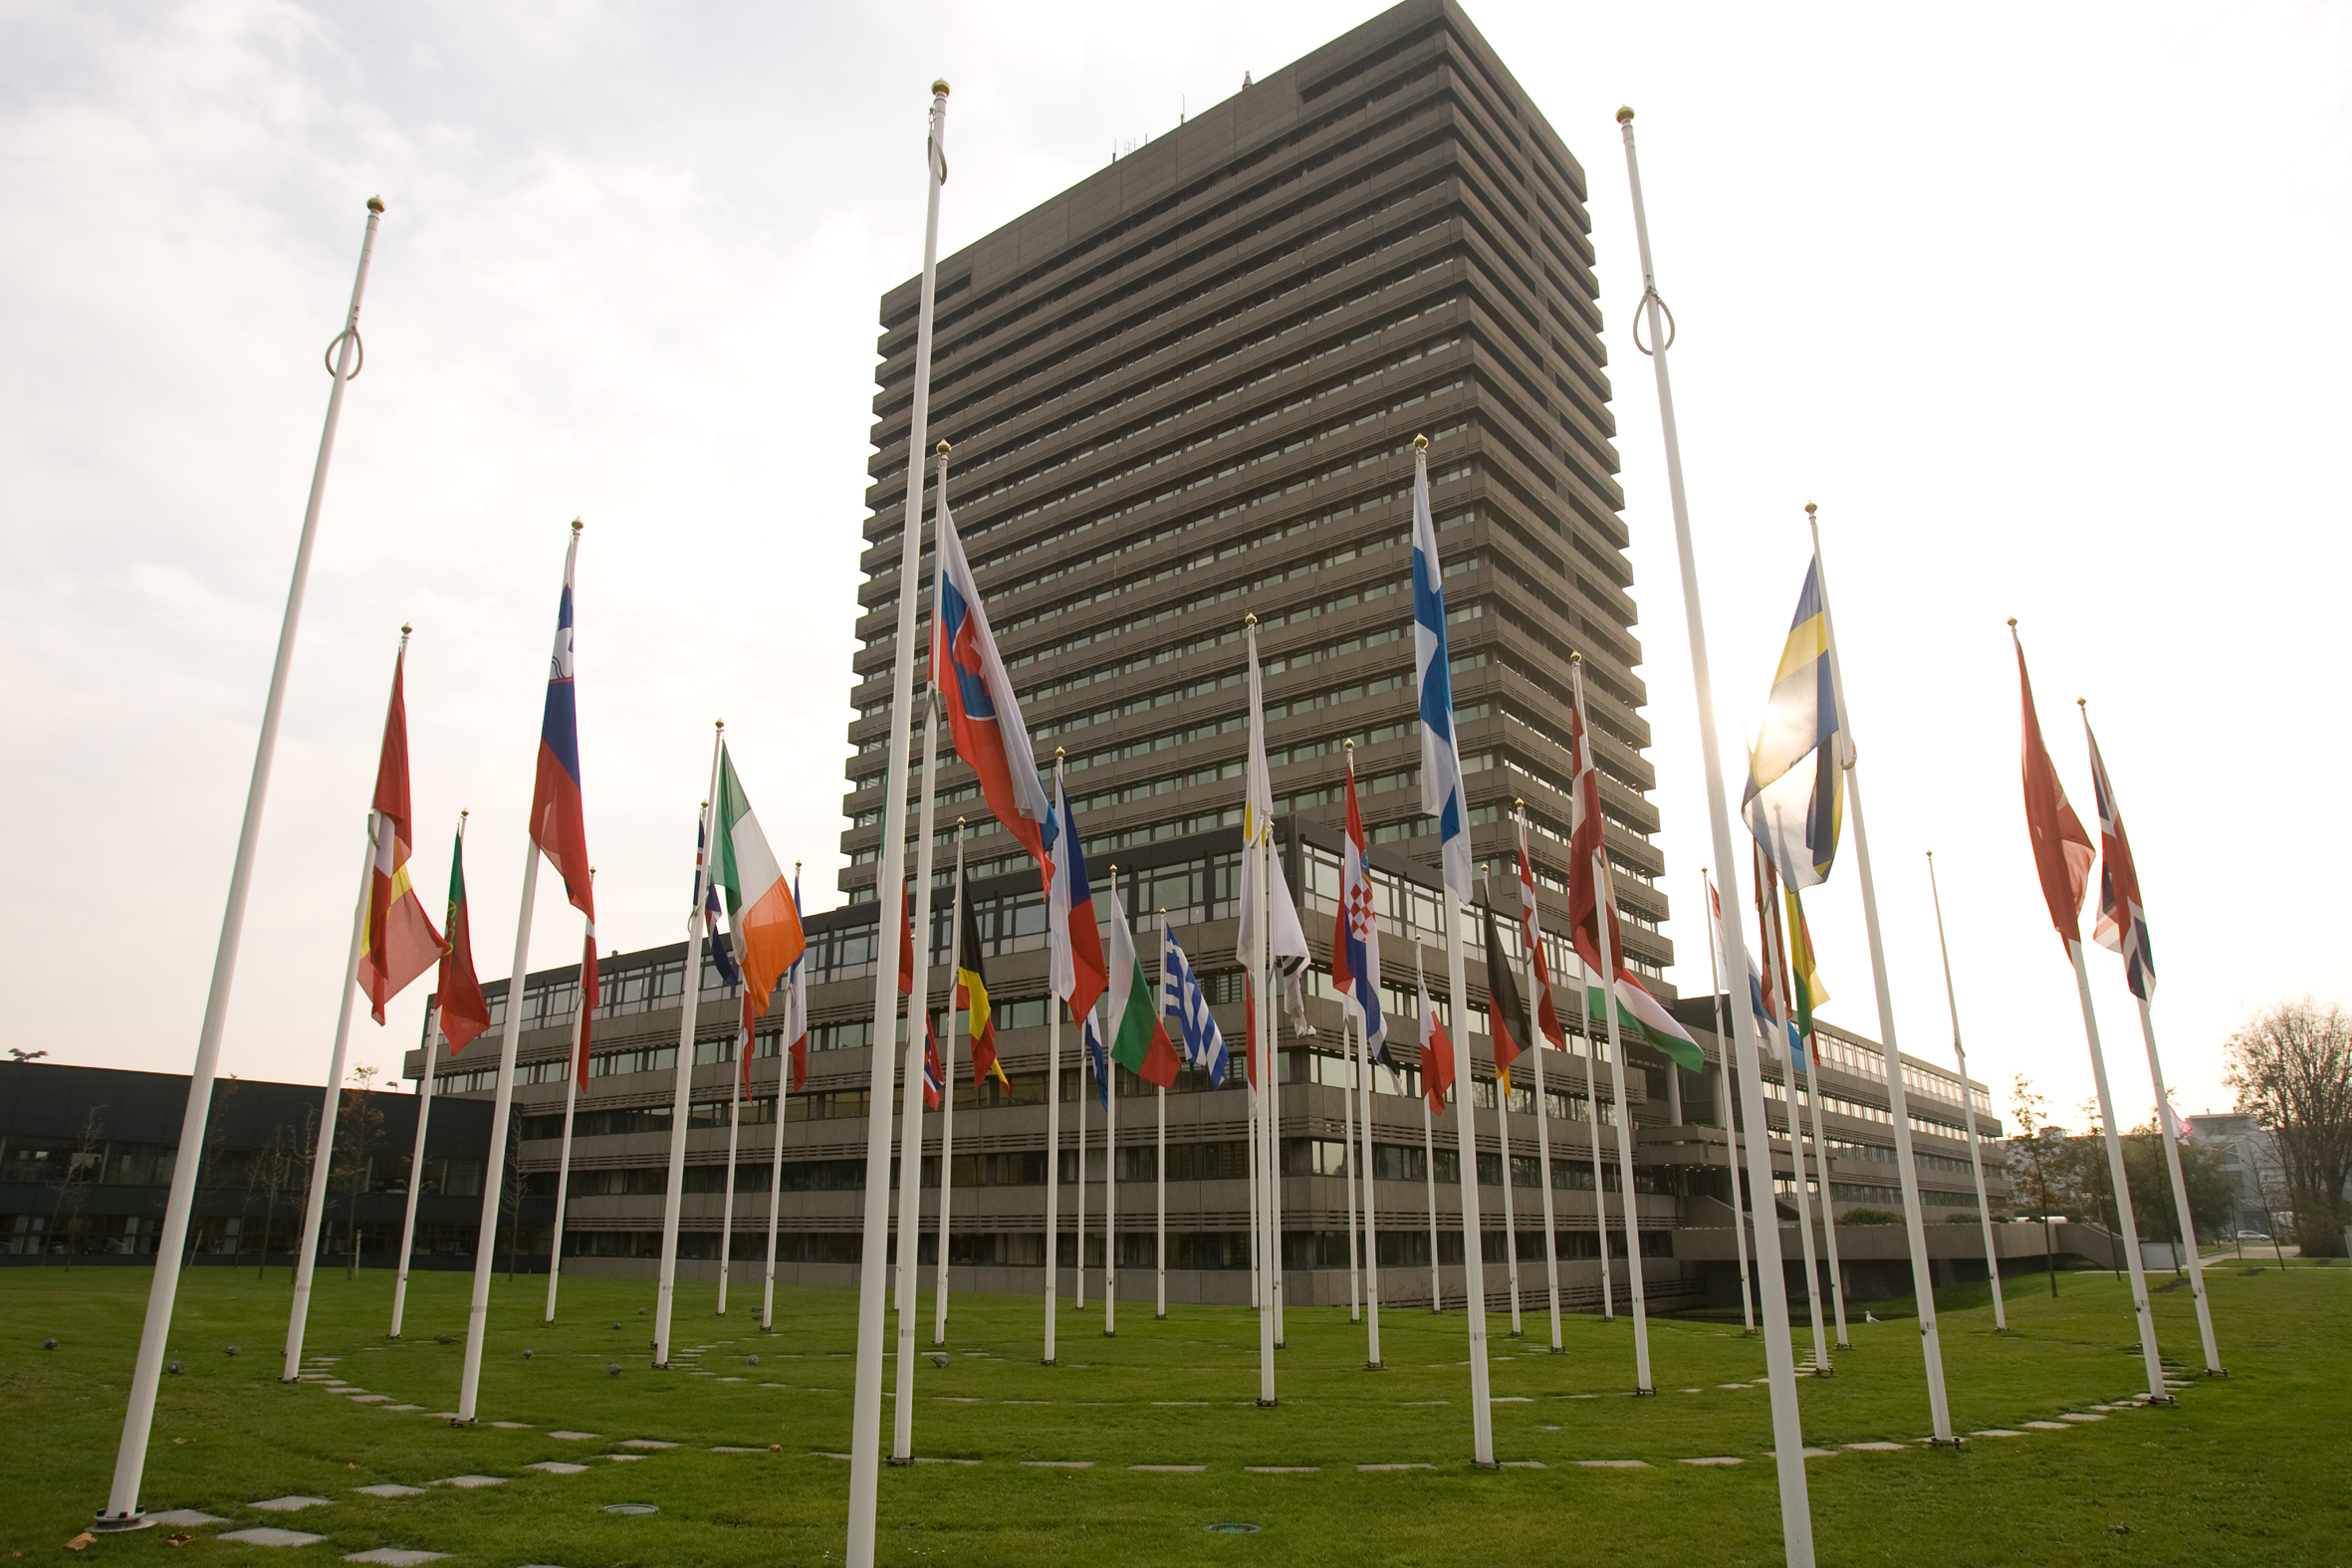 EU Capitals: The Hague